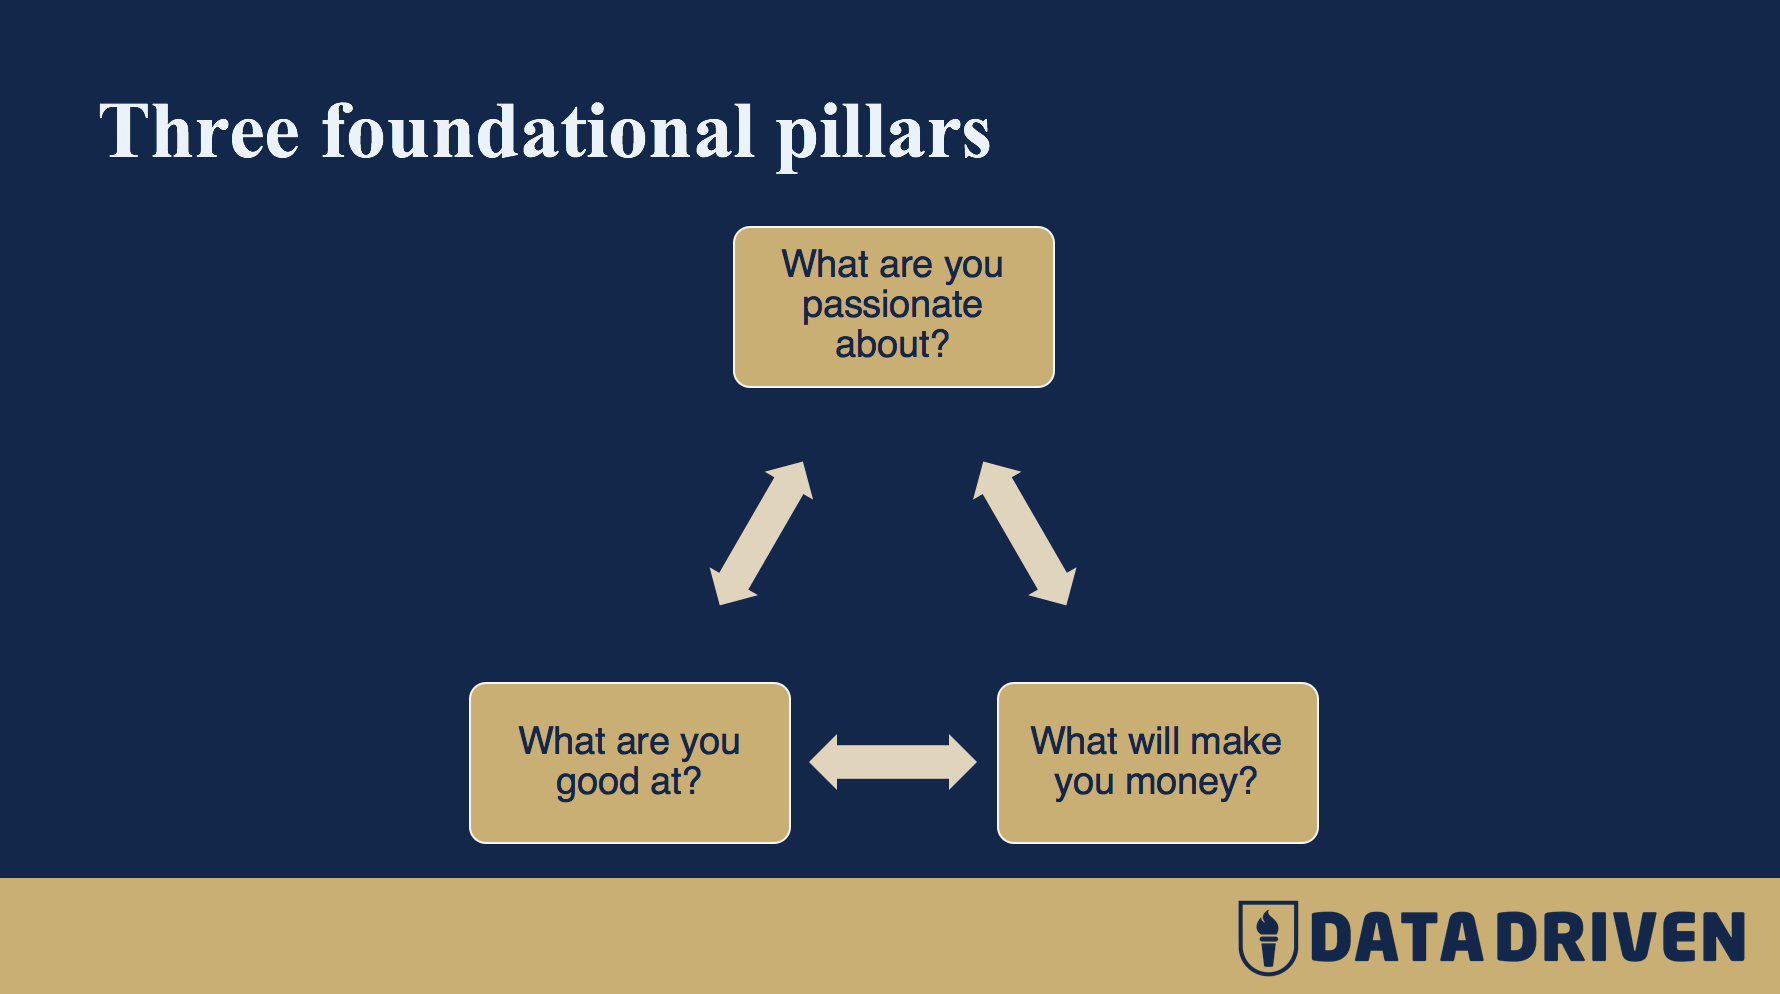 Three Foundational Pillars of your service offering